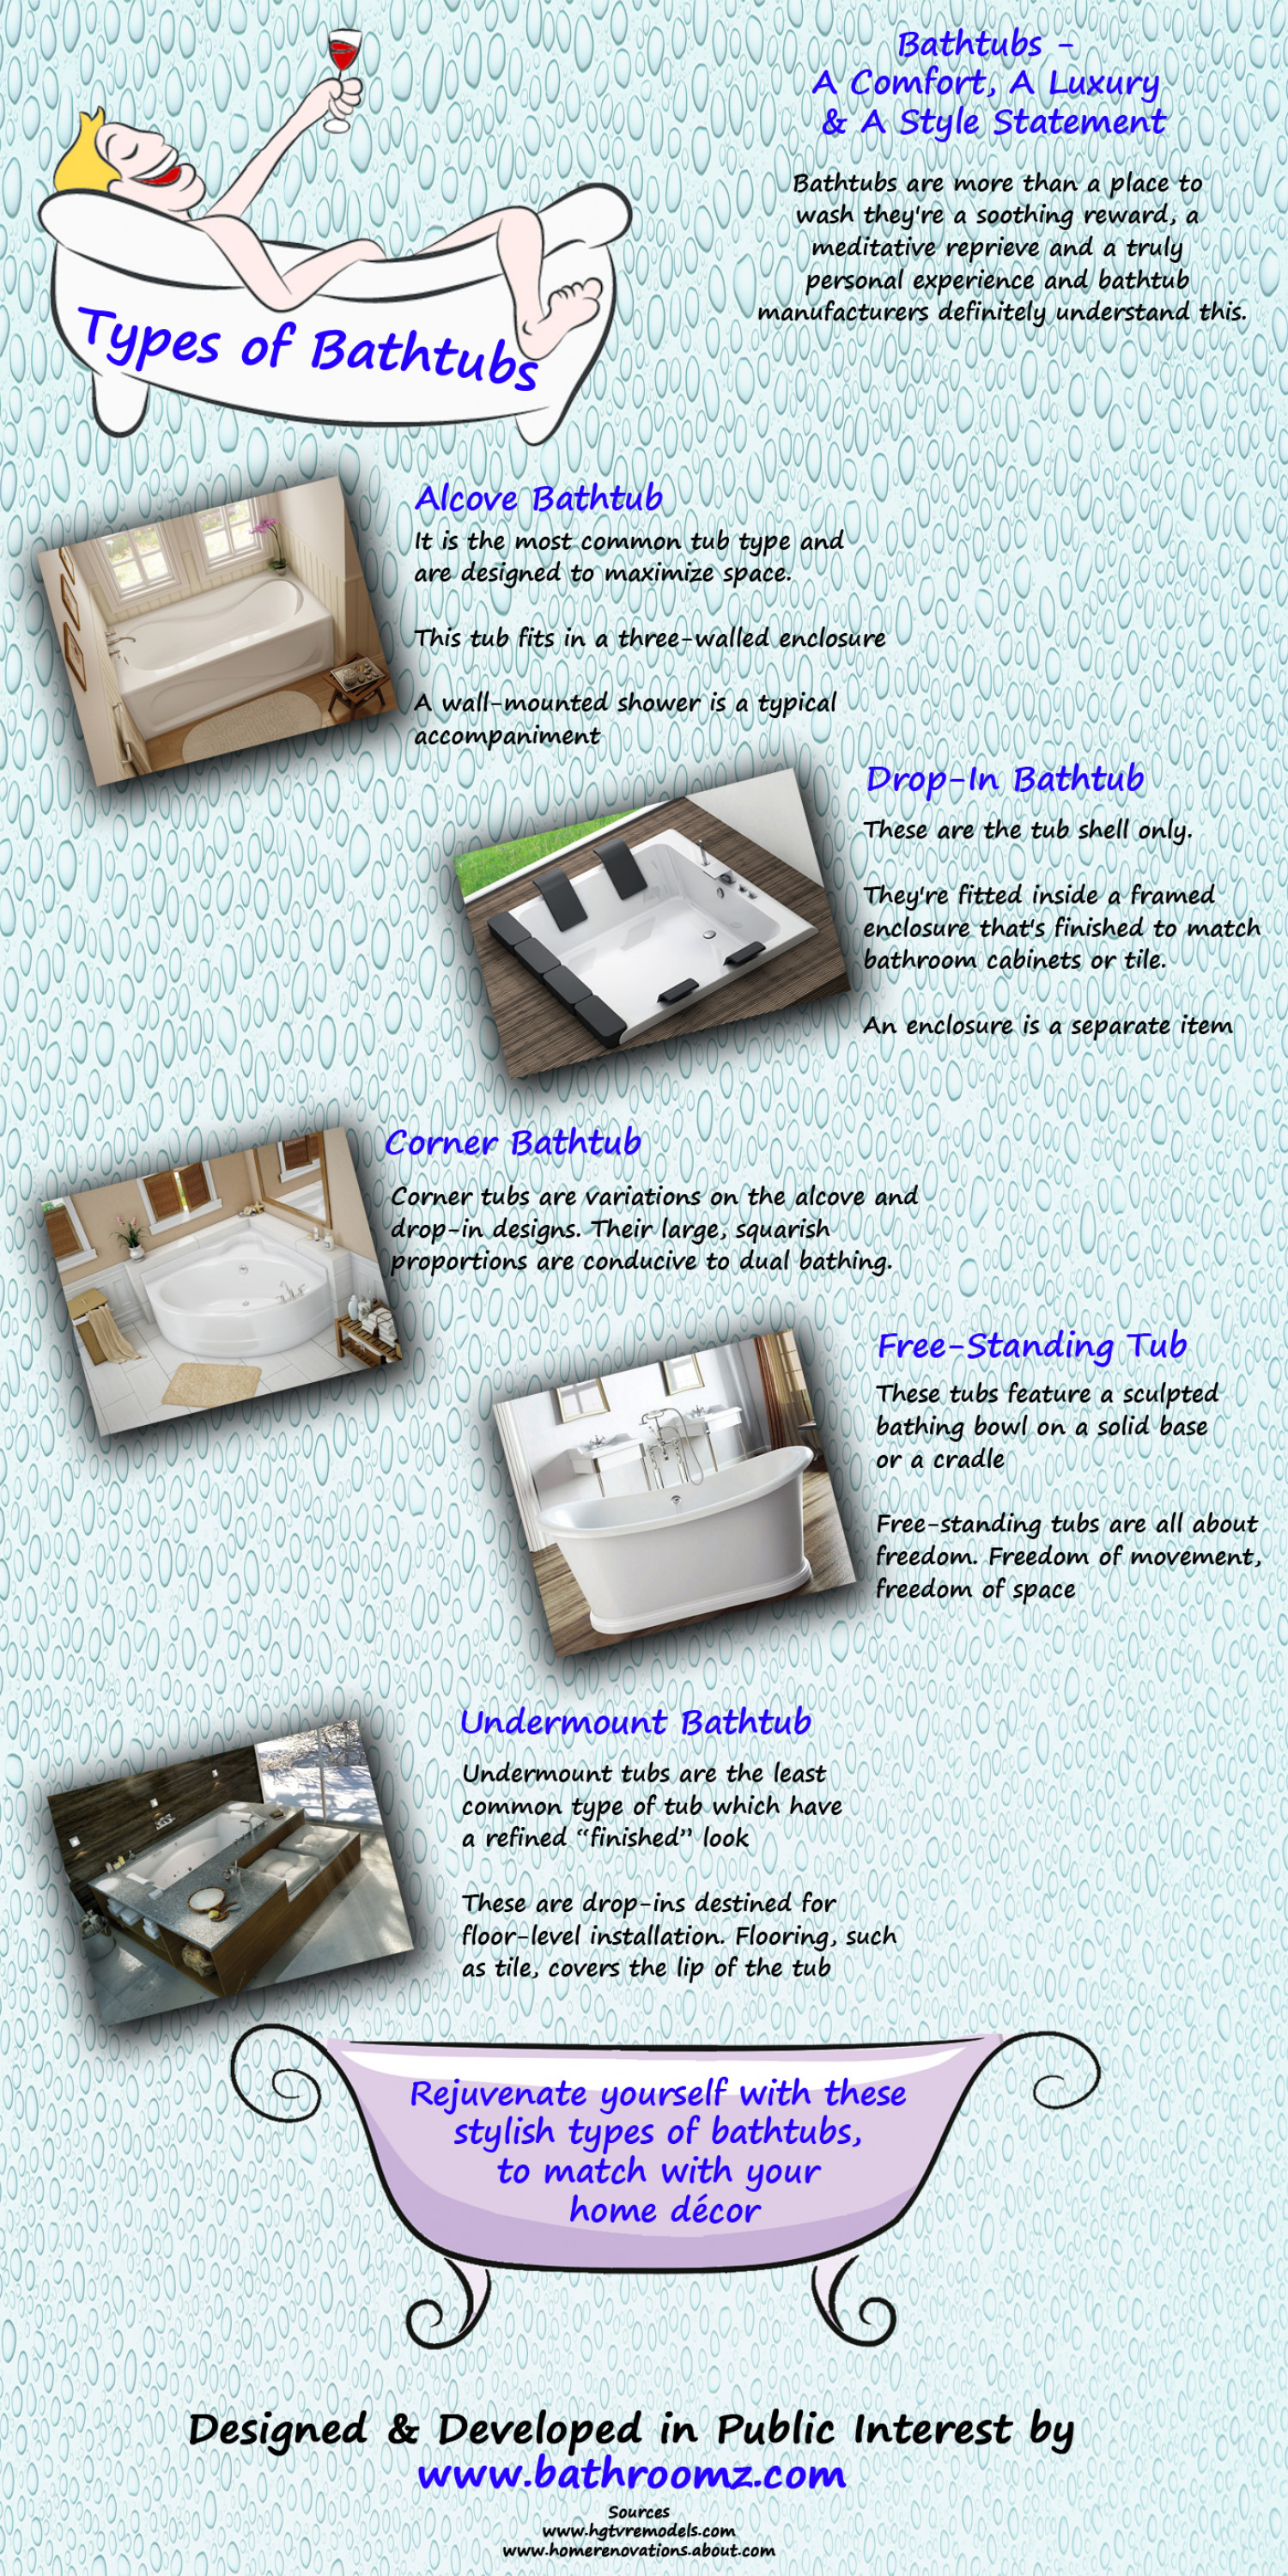 Types of Bathtubs Infographic